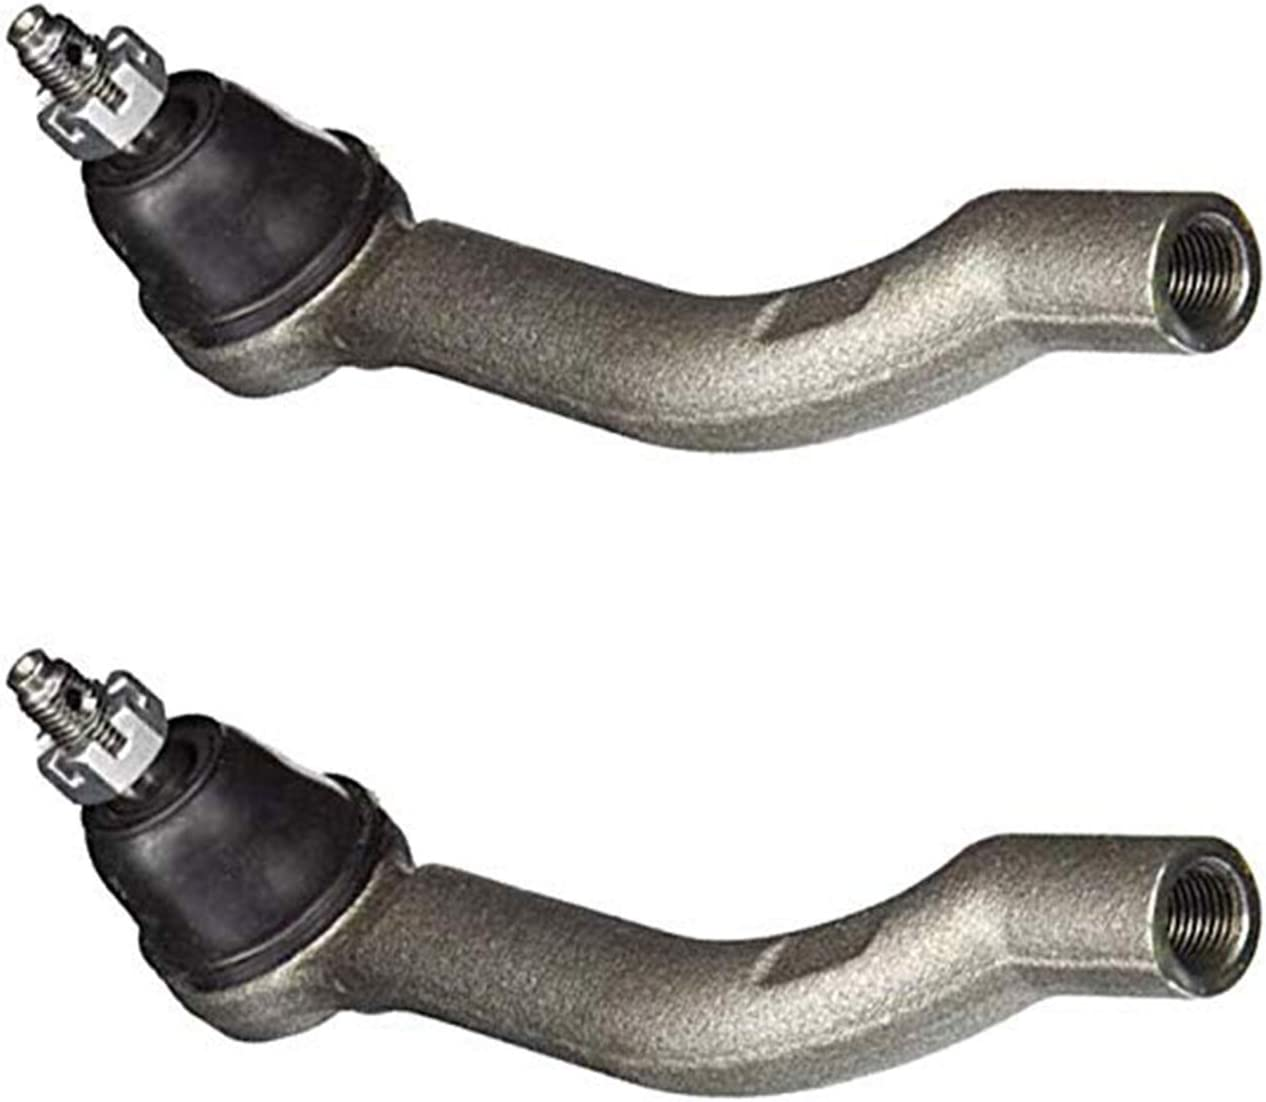 Detroit Axle Pair Front Outer Tie Rod Ends Driver and Passenger Side For 2008 2009 2010 2011 2012 2013 Nissan Rogue